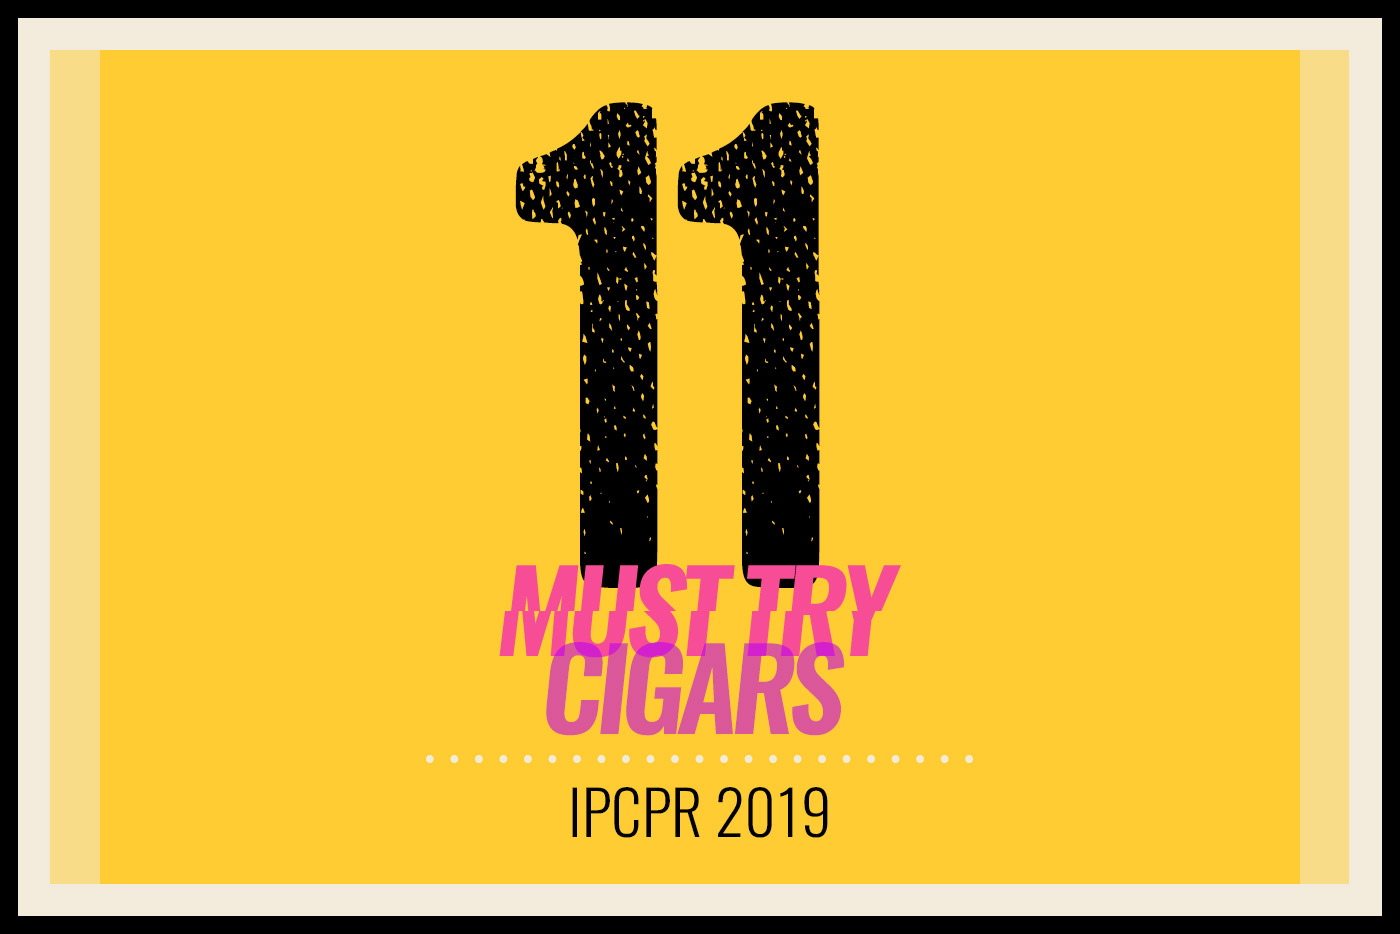 11 Must Try Cigars IPCPR 2019